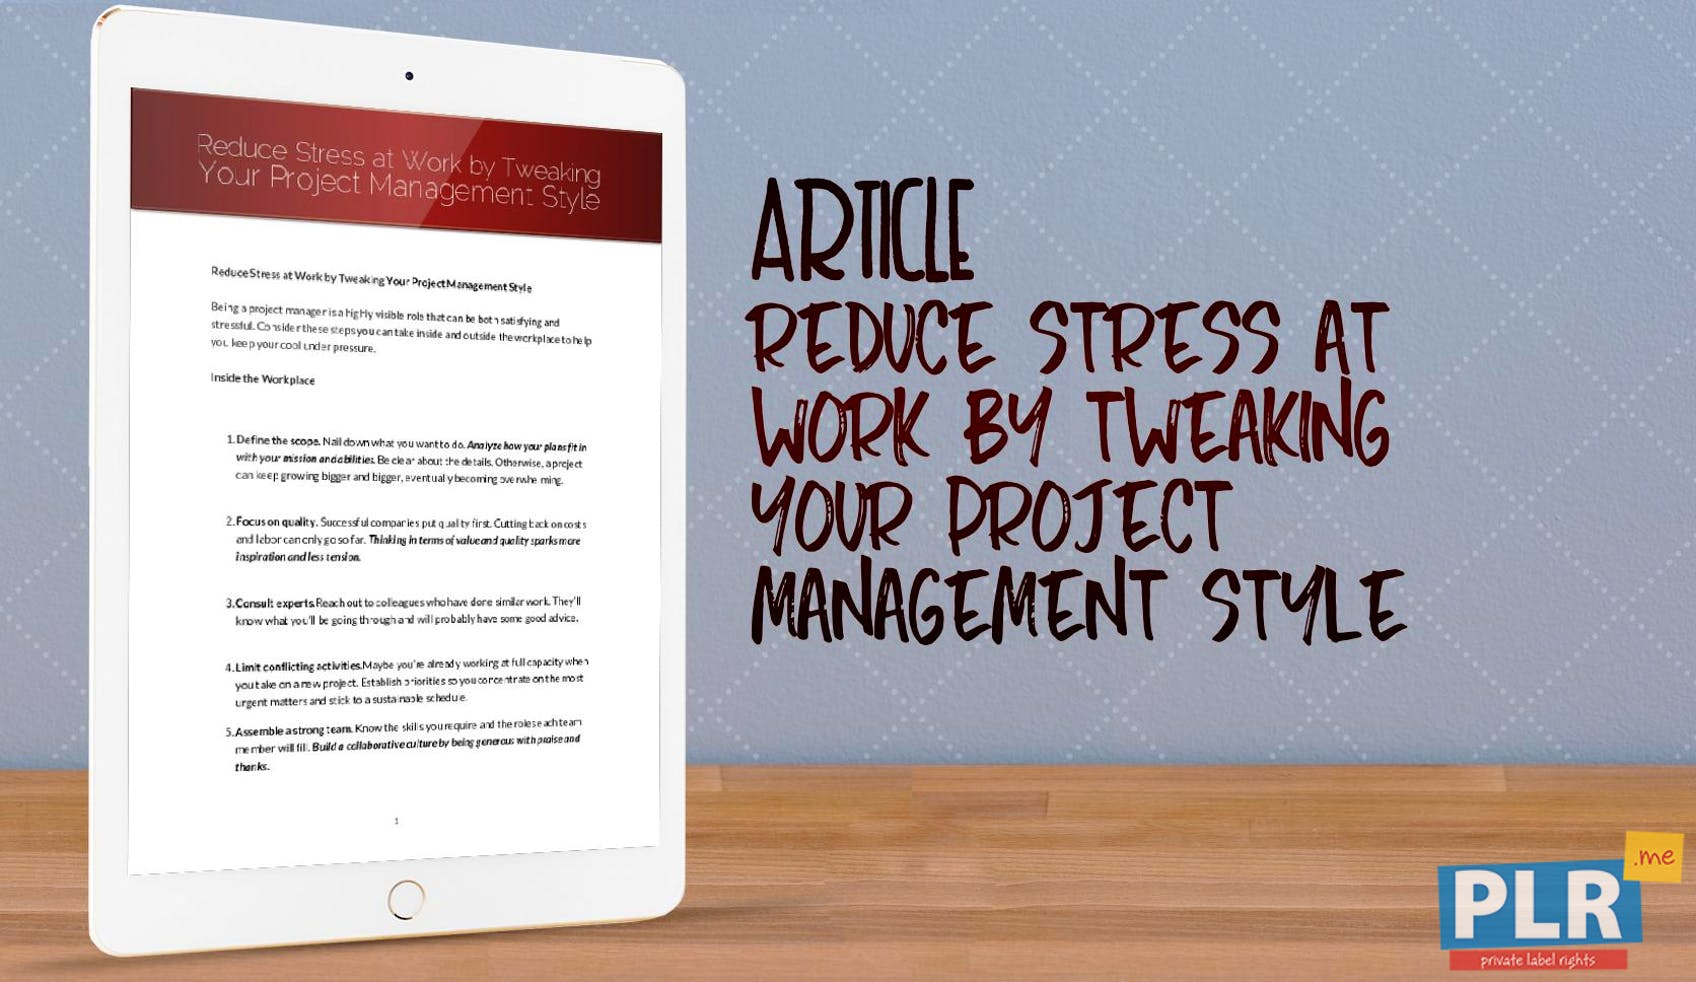 Reduce Stress At Work By Tweaking Your Project Management Style